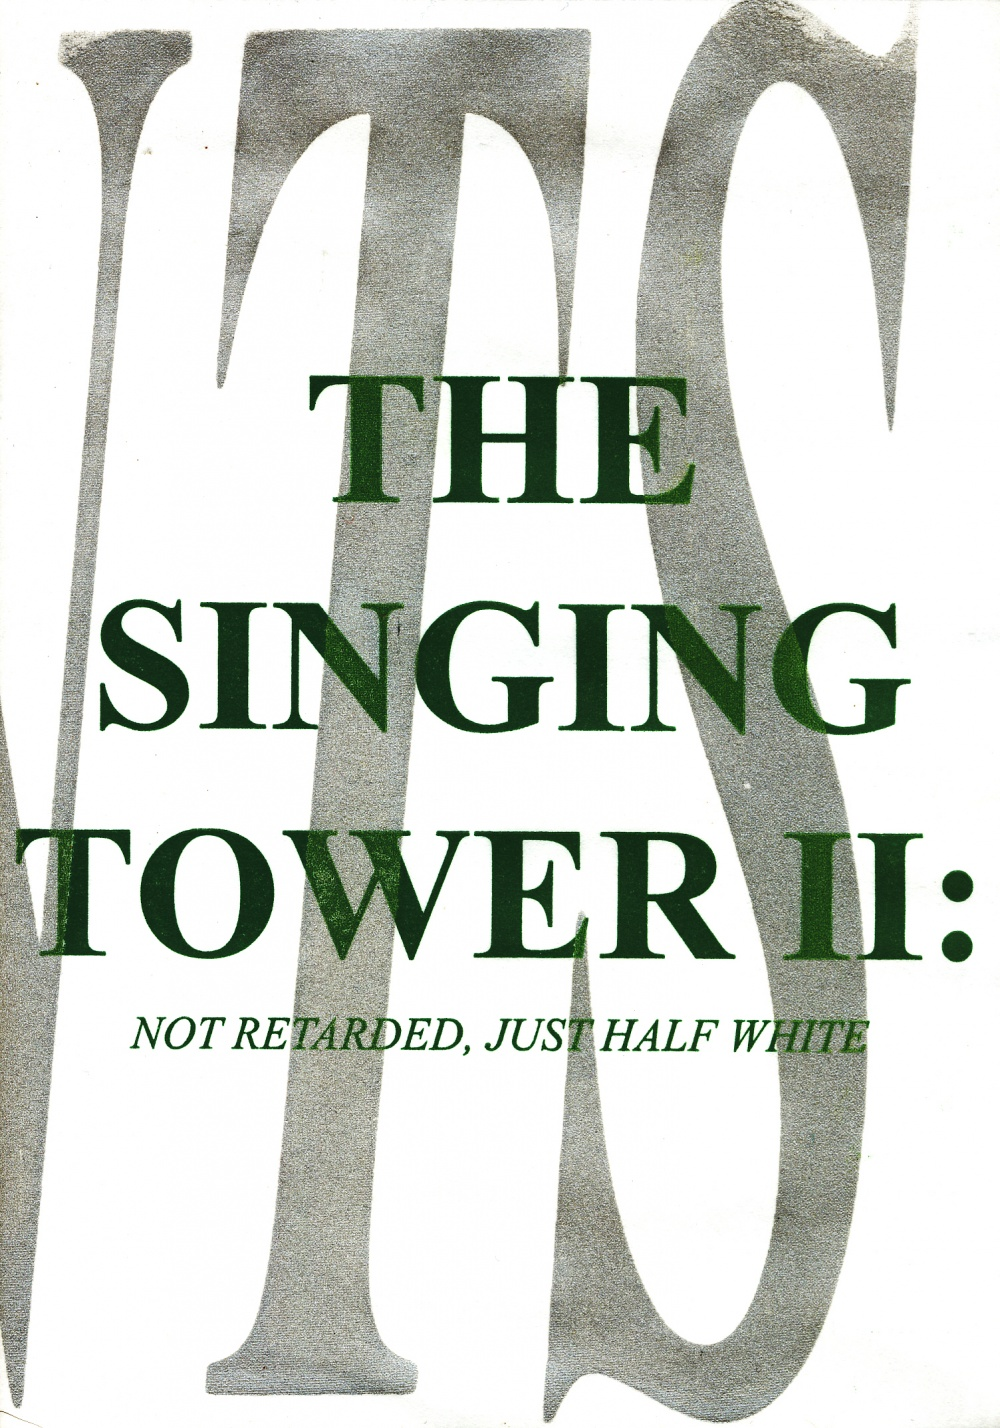 Singing Tower II: Not Retarded, Just Half White, 2009.